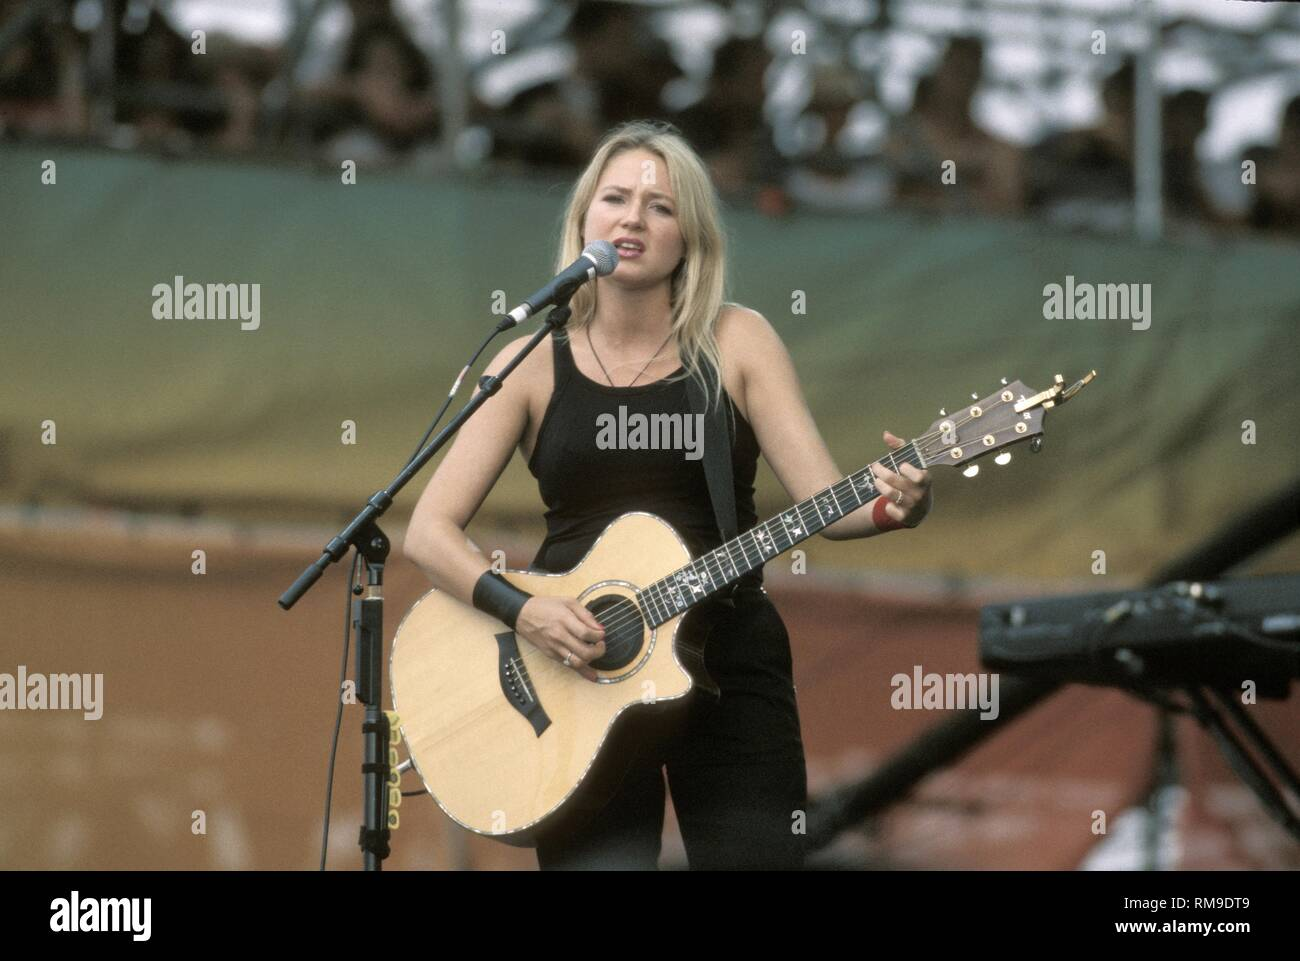 Jewel is shown performing on stage during her concert performance at woodstock '99. - Stock Image